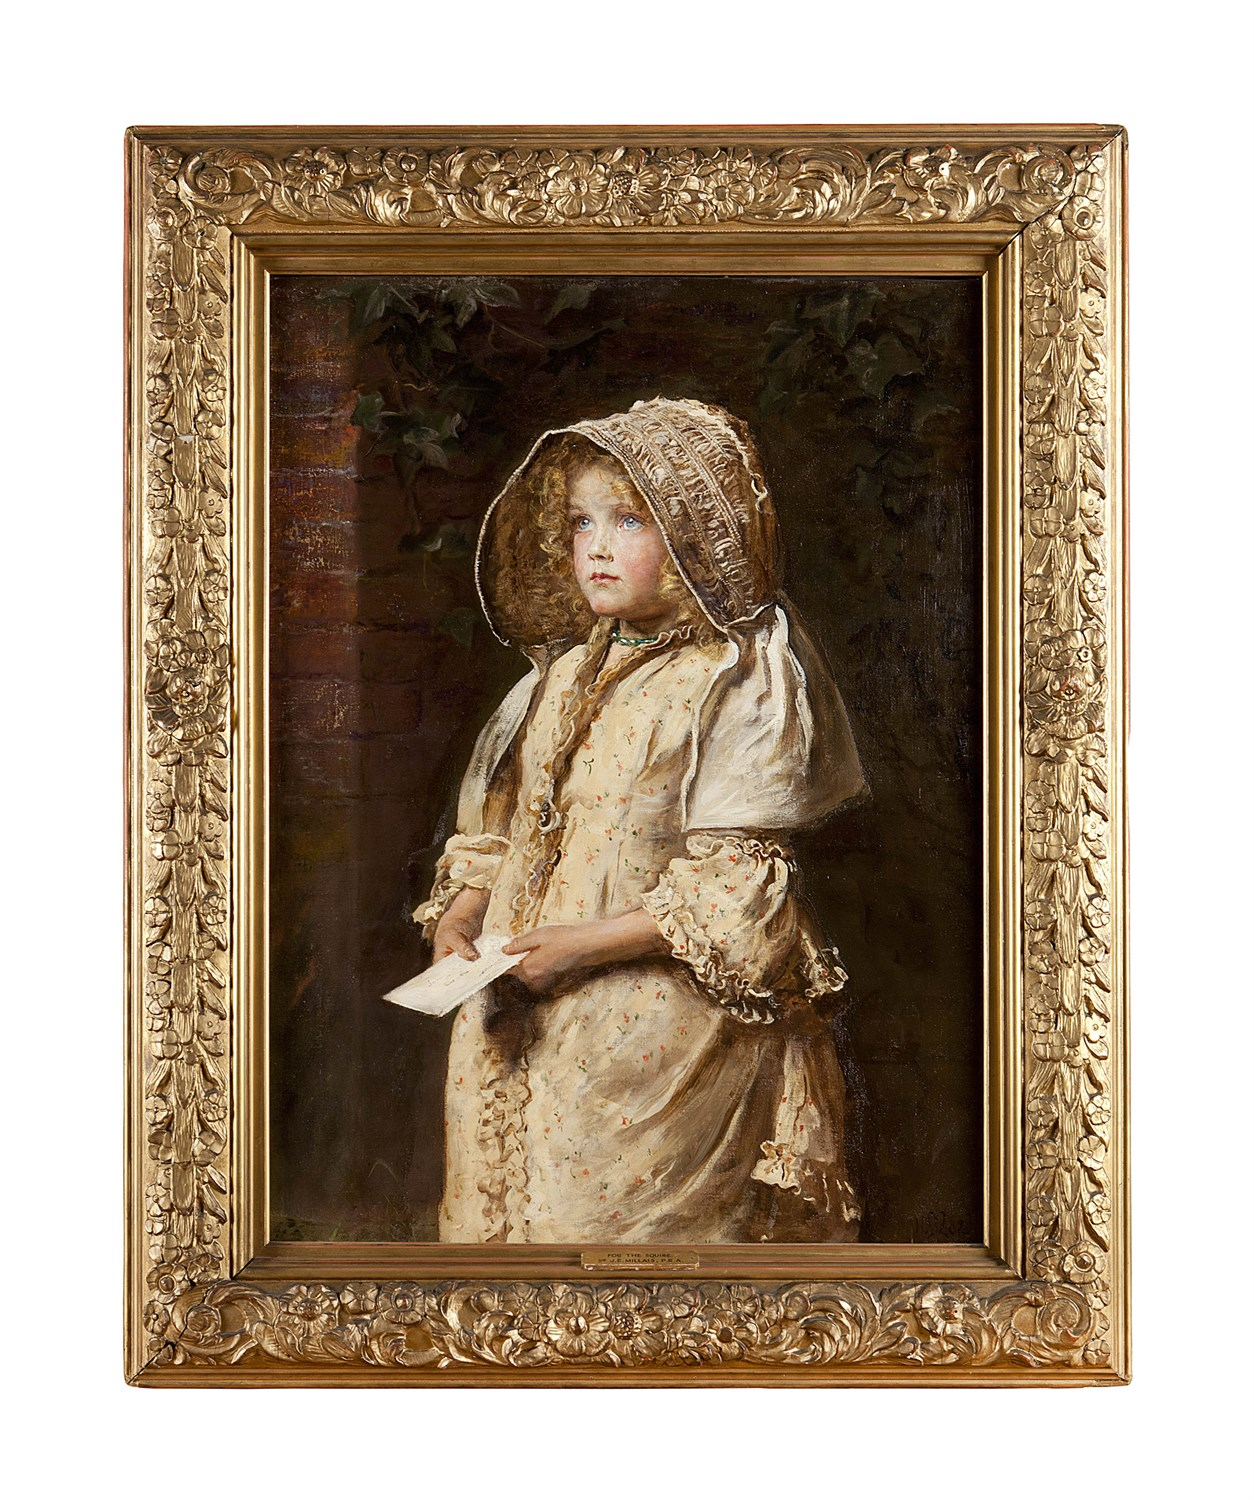 102 - SIR JOHN EVERETT MILLAIS P.R.A. (BRITISH 1829-1896)